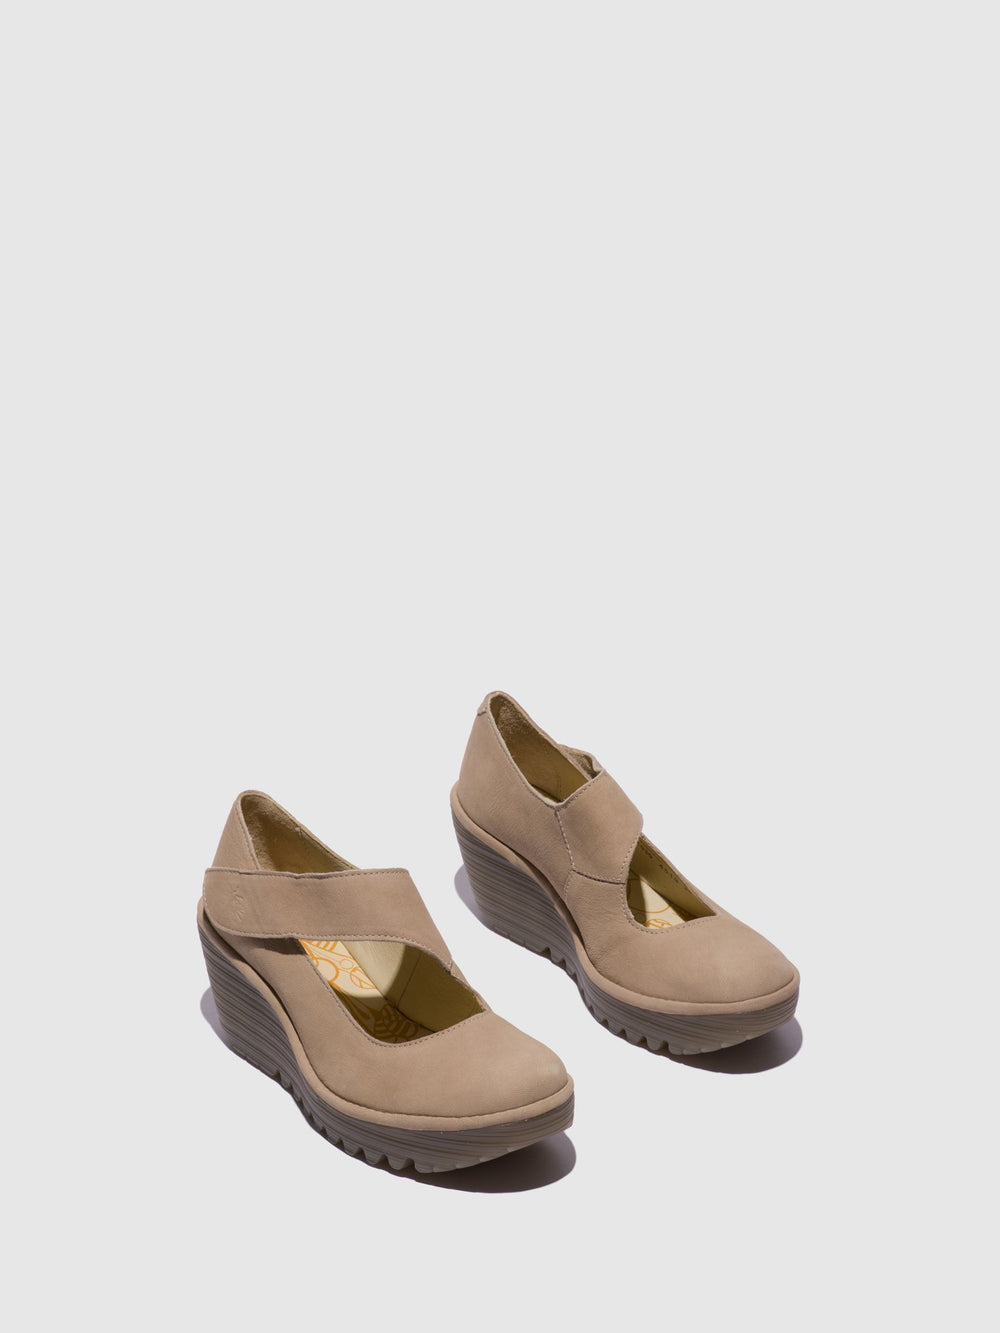 Wheat Wedge Shoes